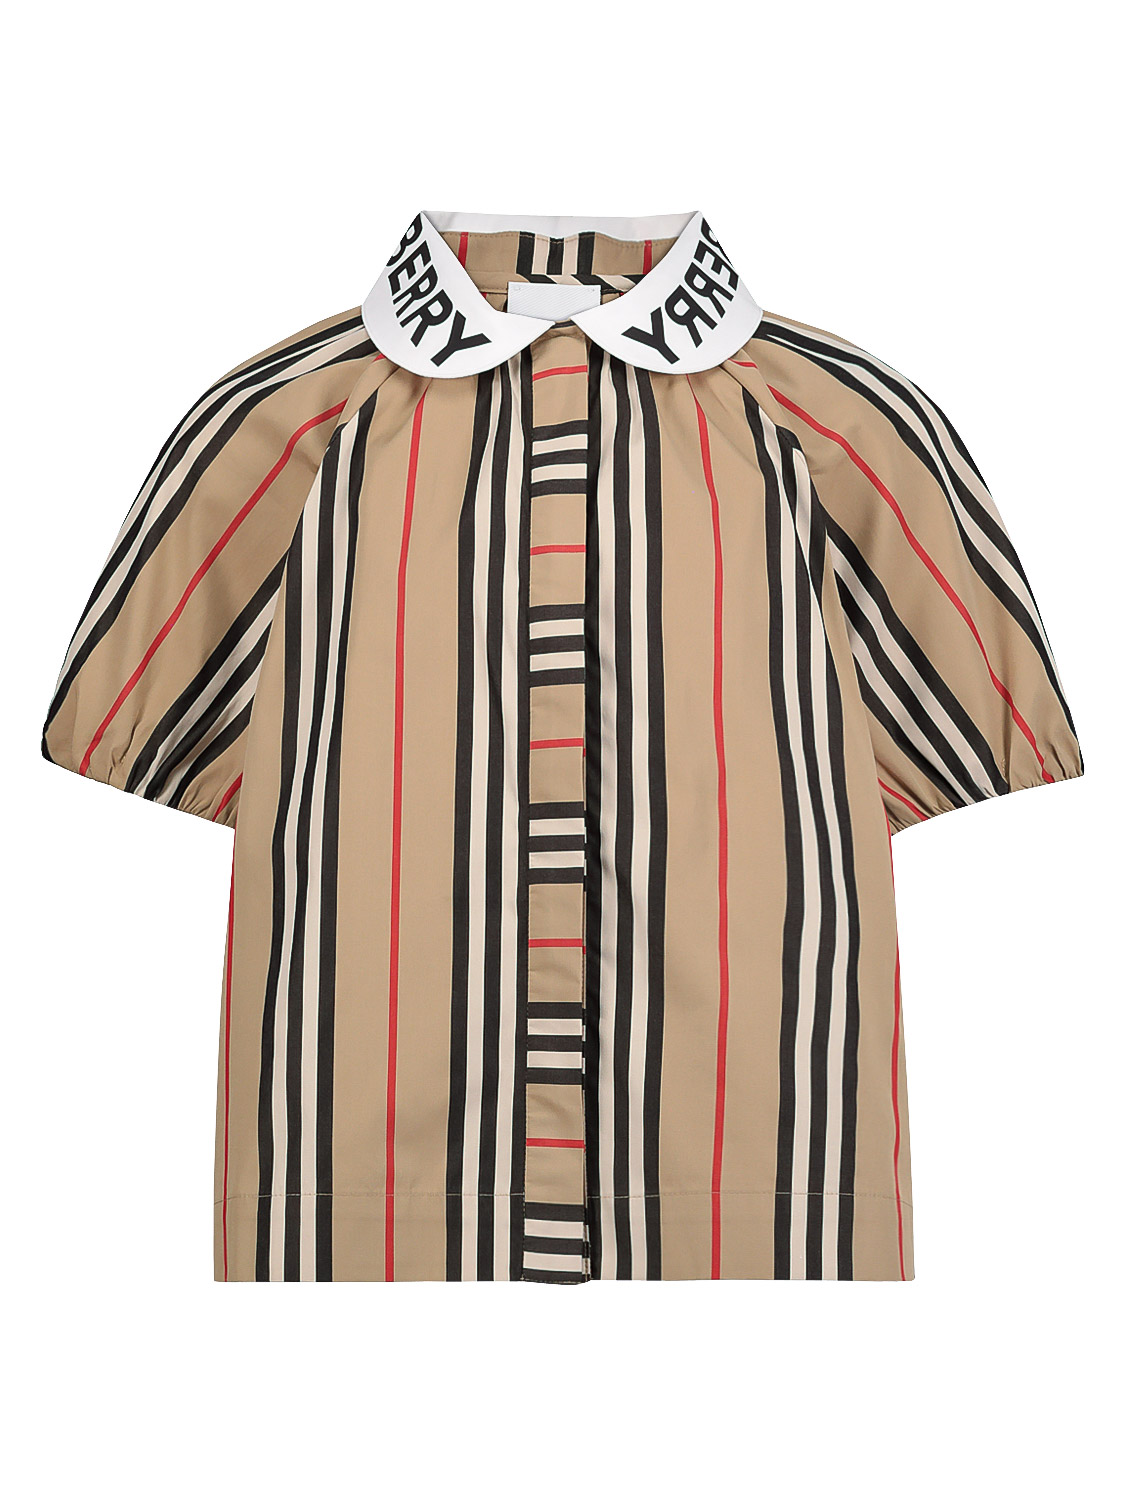 Burberry Kids Blouse For Girls In Beige